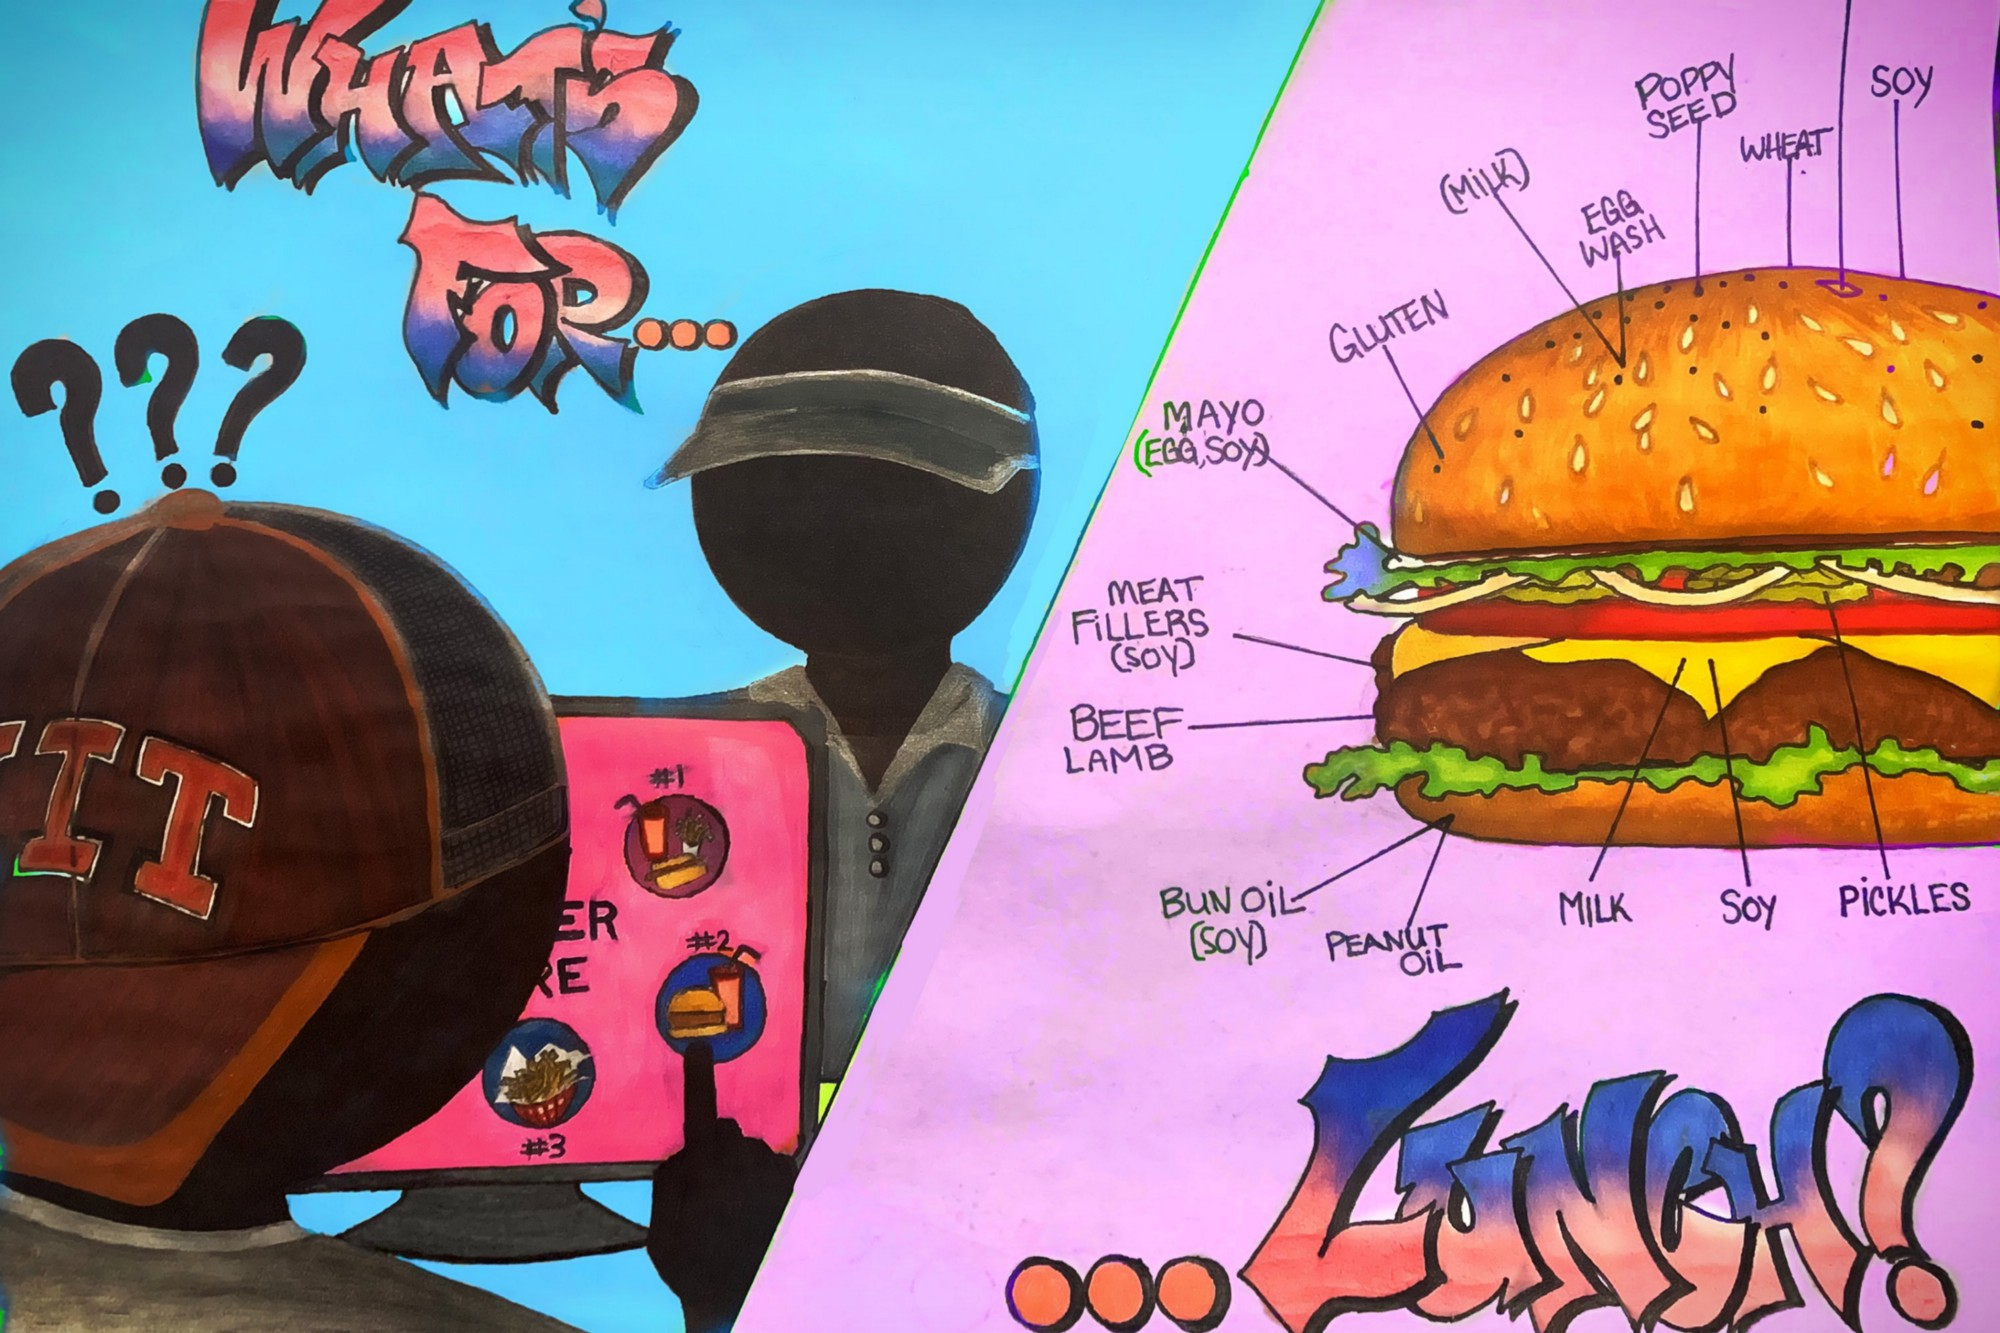 """Split screen: on the left side, the words """"what's for…"""" with a cartoon of someone ordering food on a touchscreen. On the right side, an illustration of a cheeseburger with arrows pointing to potential allergens, with the word """"…lunch?"""" beneath it."""